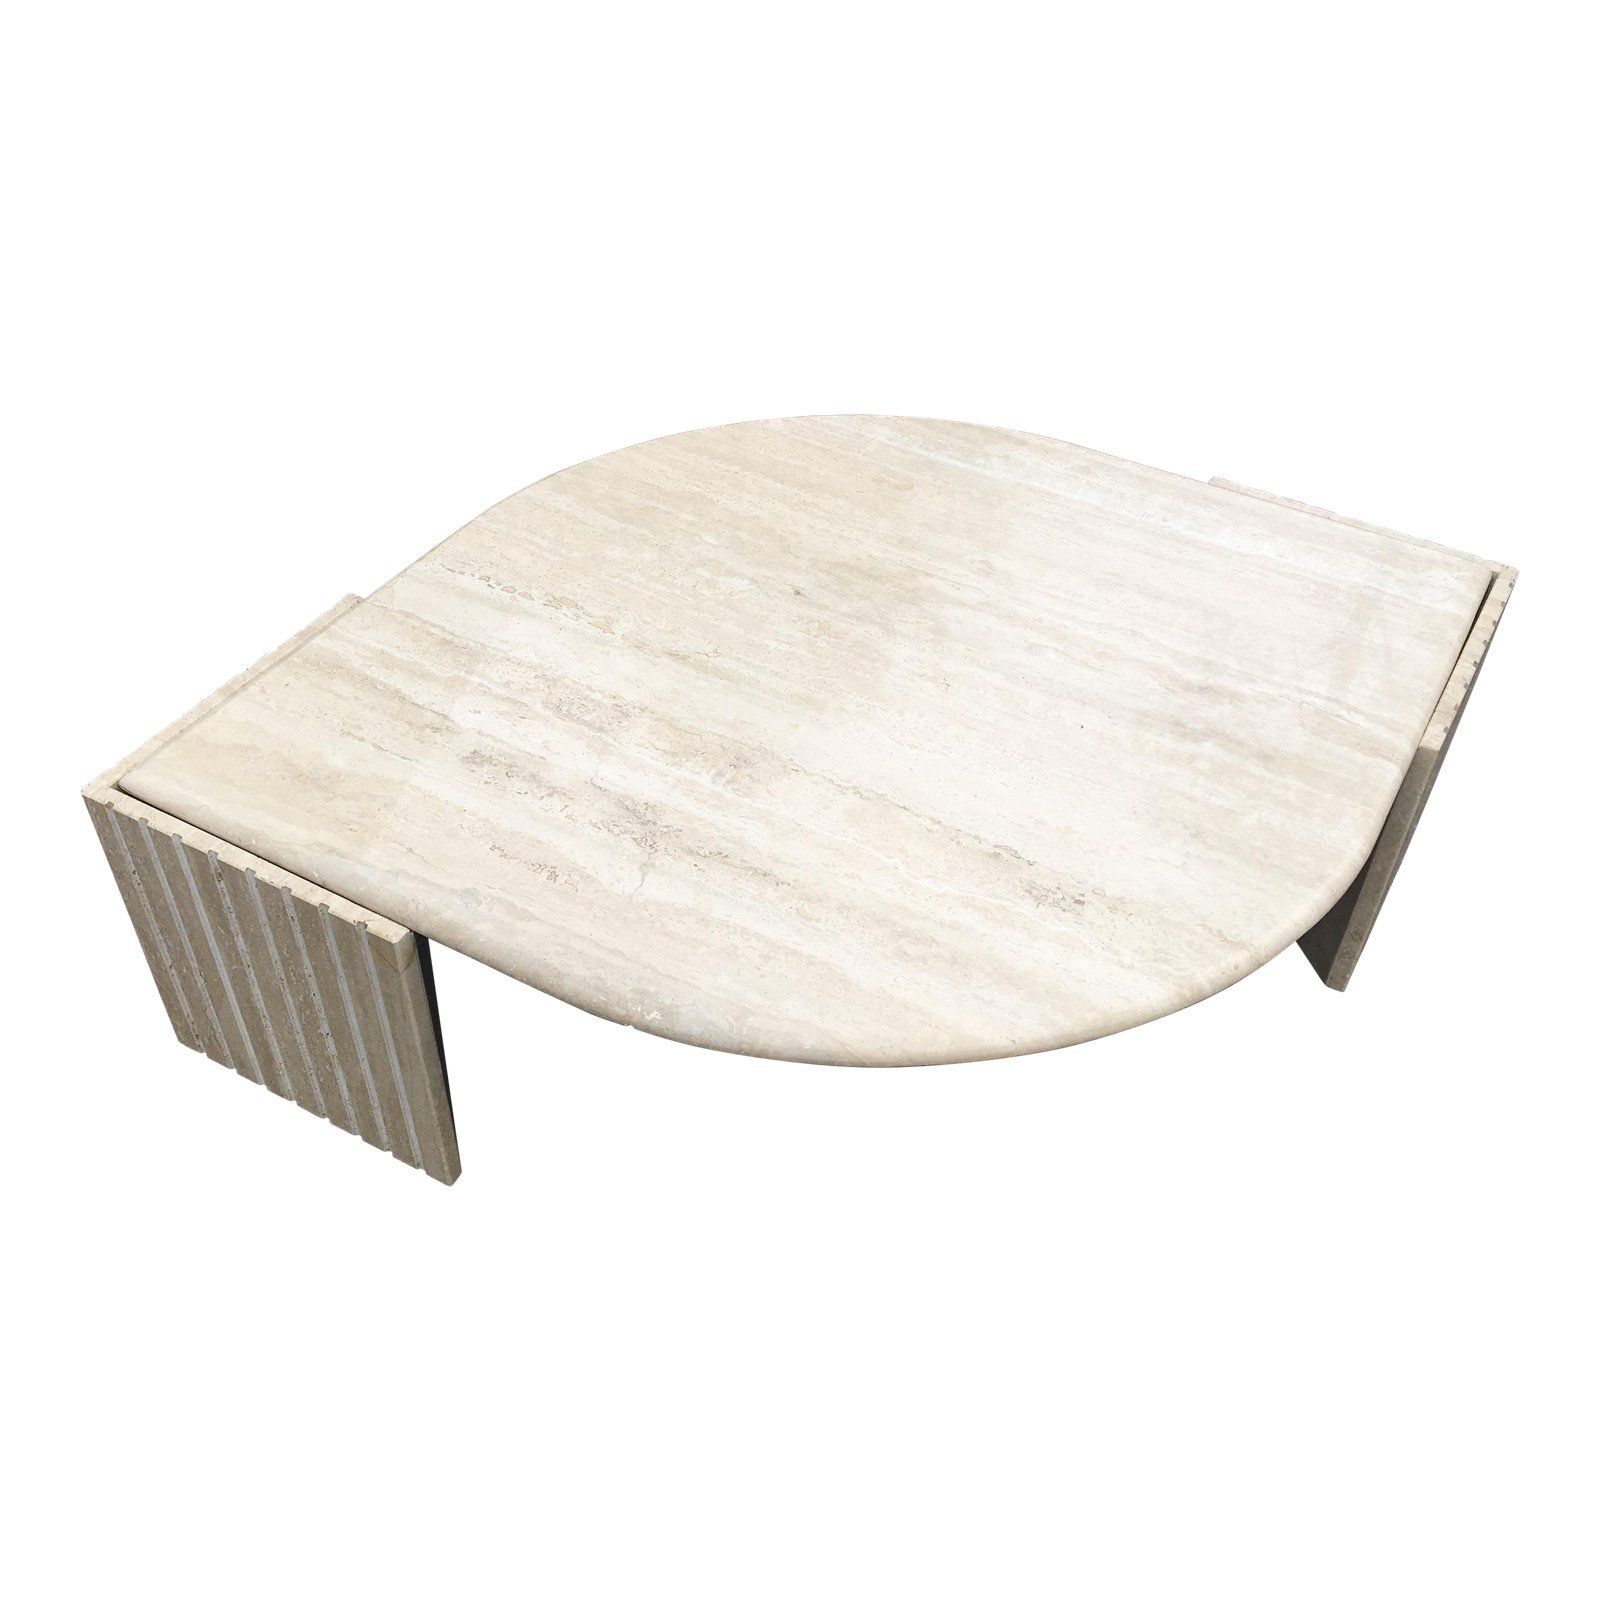 1980 S Brutalist Travertine Marble Coffee Table In 2019